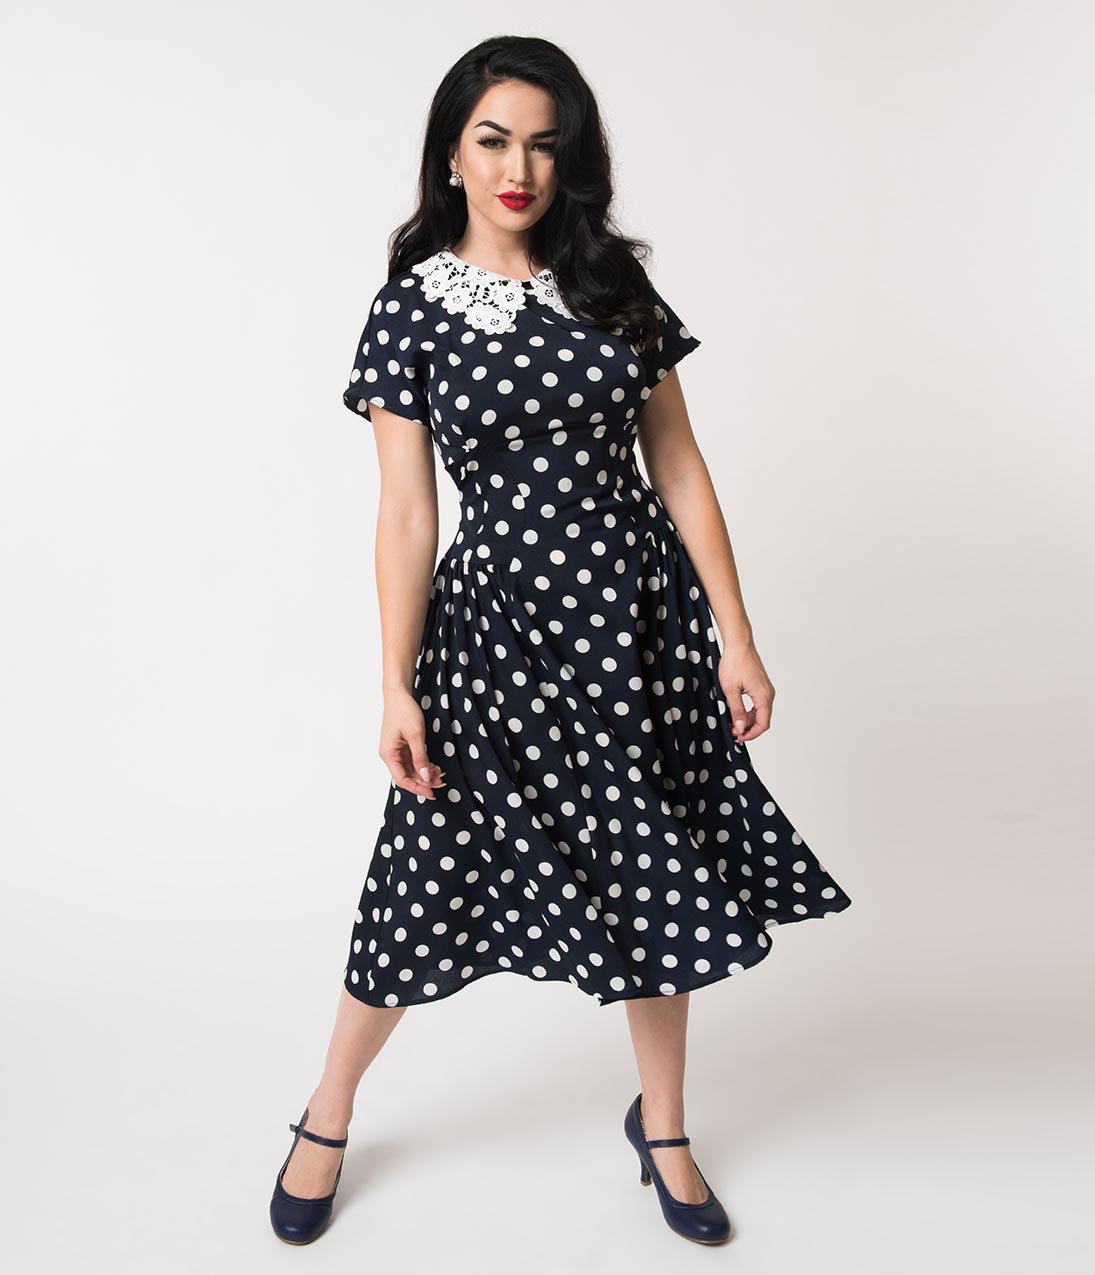 1940s Day Dress Styles, House Dresses Unique Vintage 1940S Navy  White Polka Dot Lace Collar Margie Dress $41.00 AT vintagedancer.com